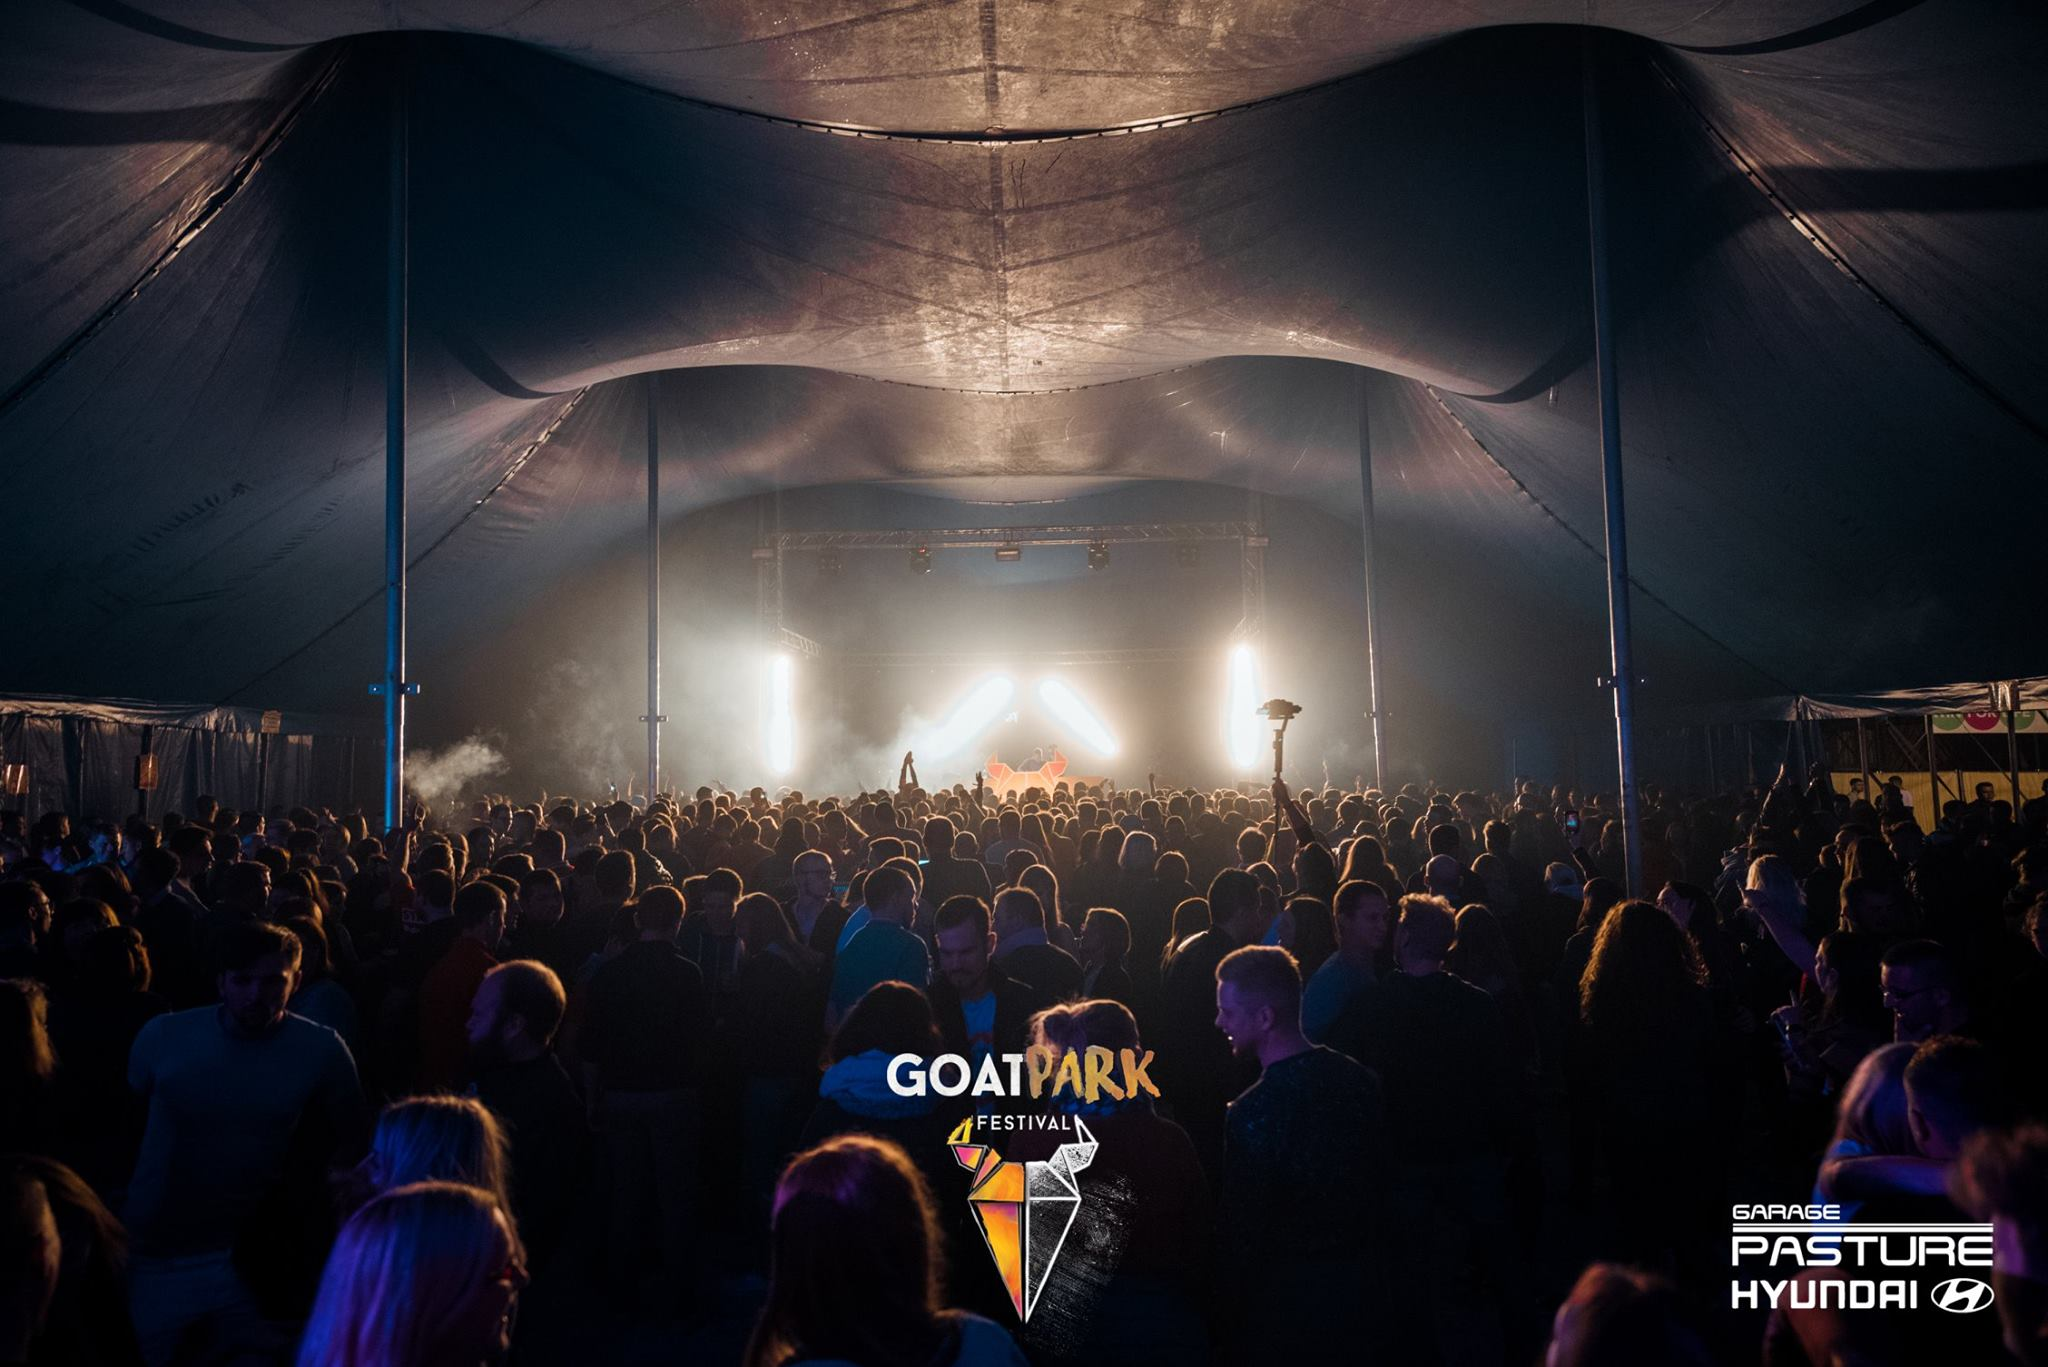 goatpark festival background section